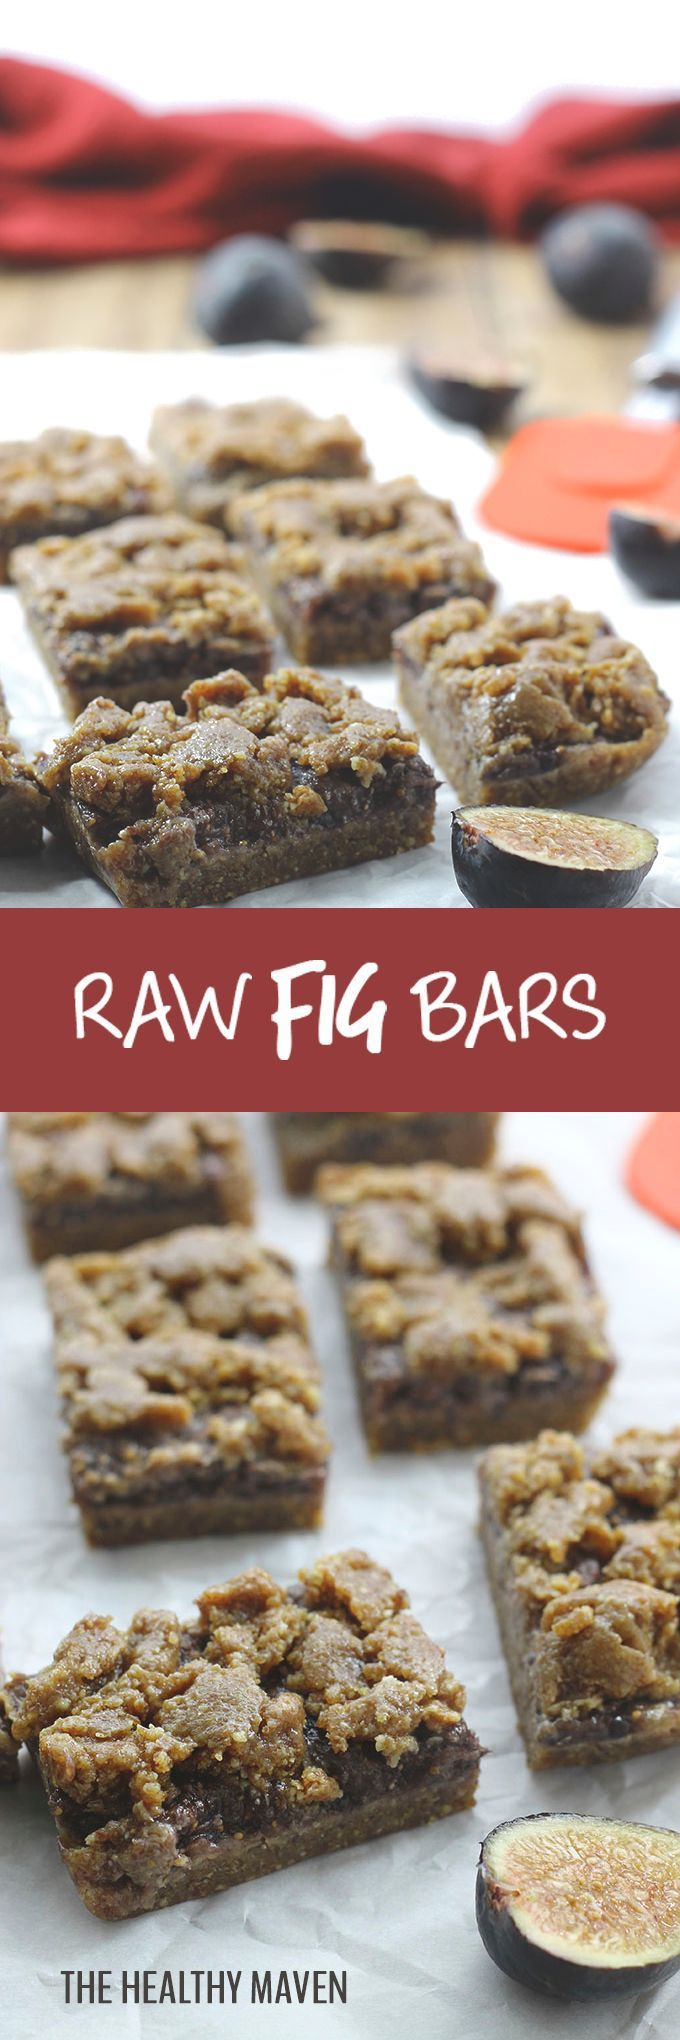 Raw Fig Bars - a delicious and healthy snack recipe using fresh figs for the filling and ground flax  and nuts for the raw crust.